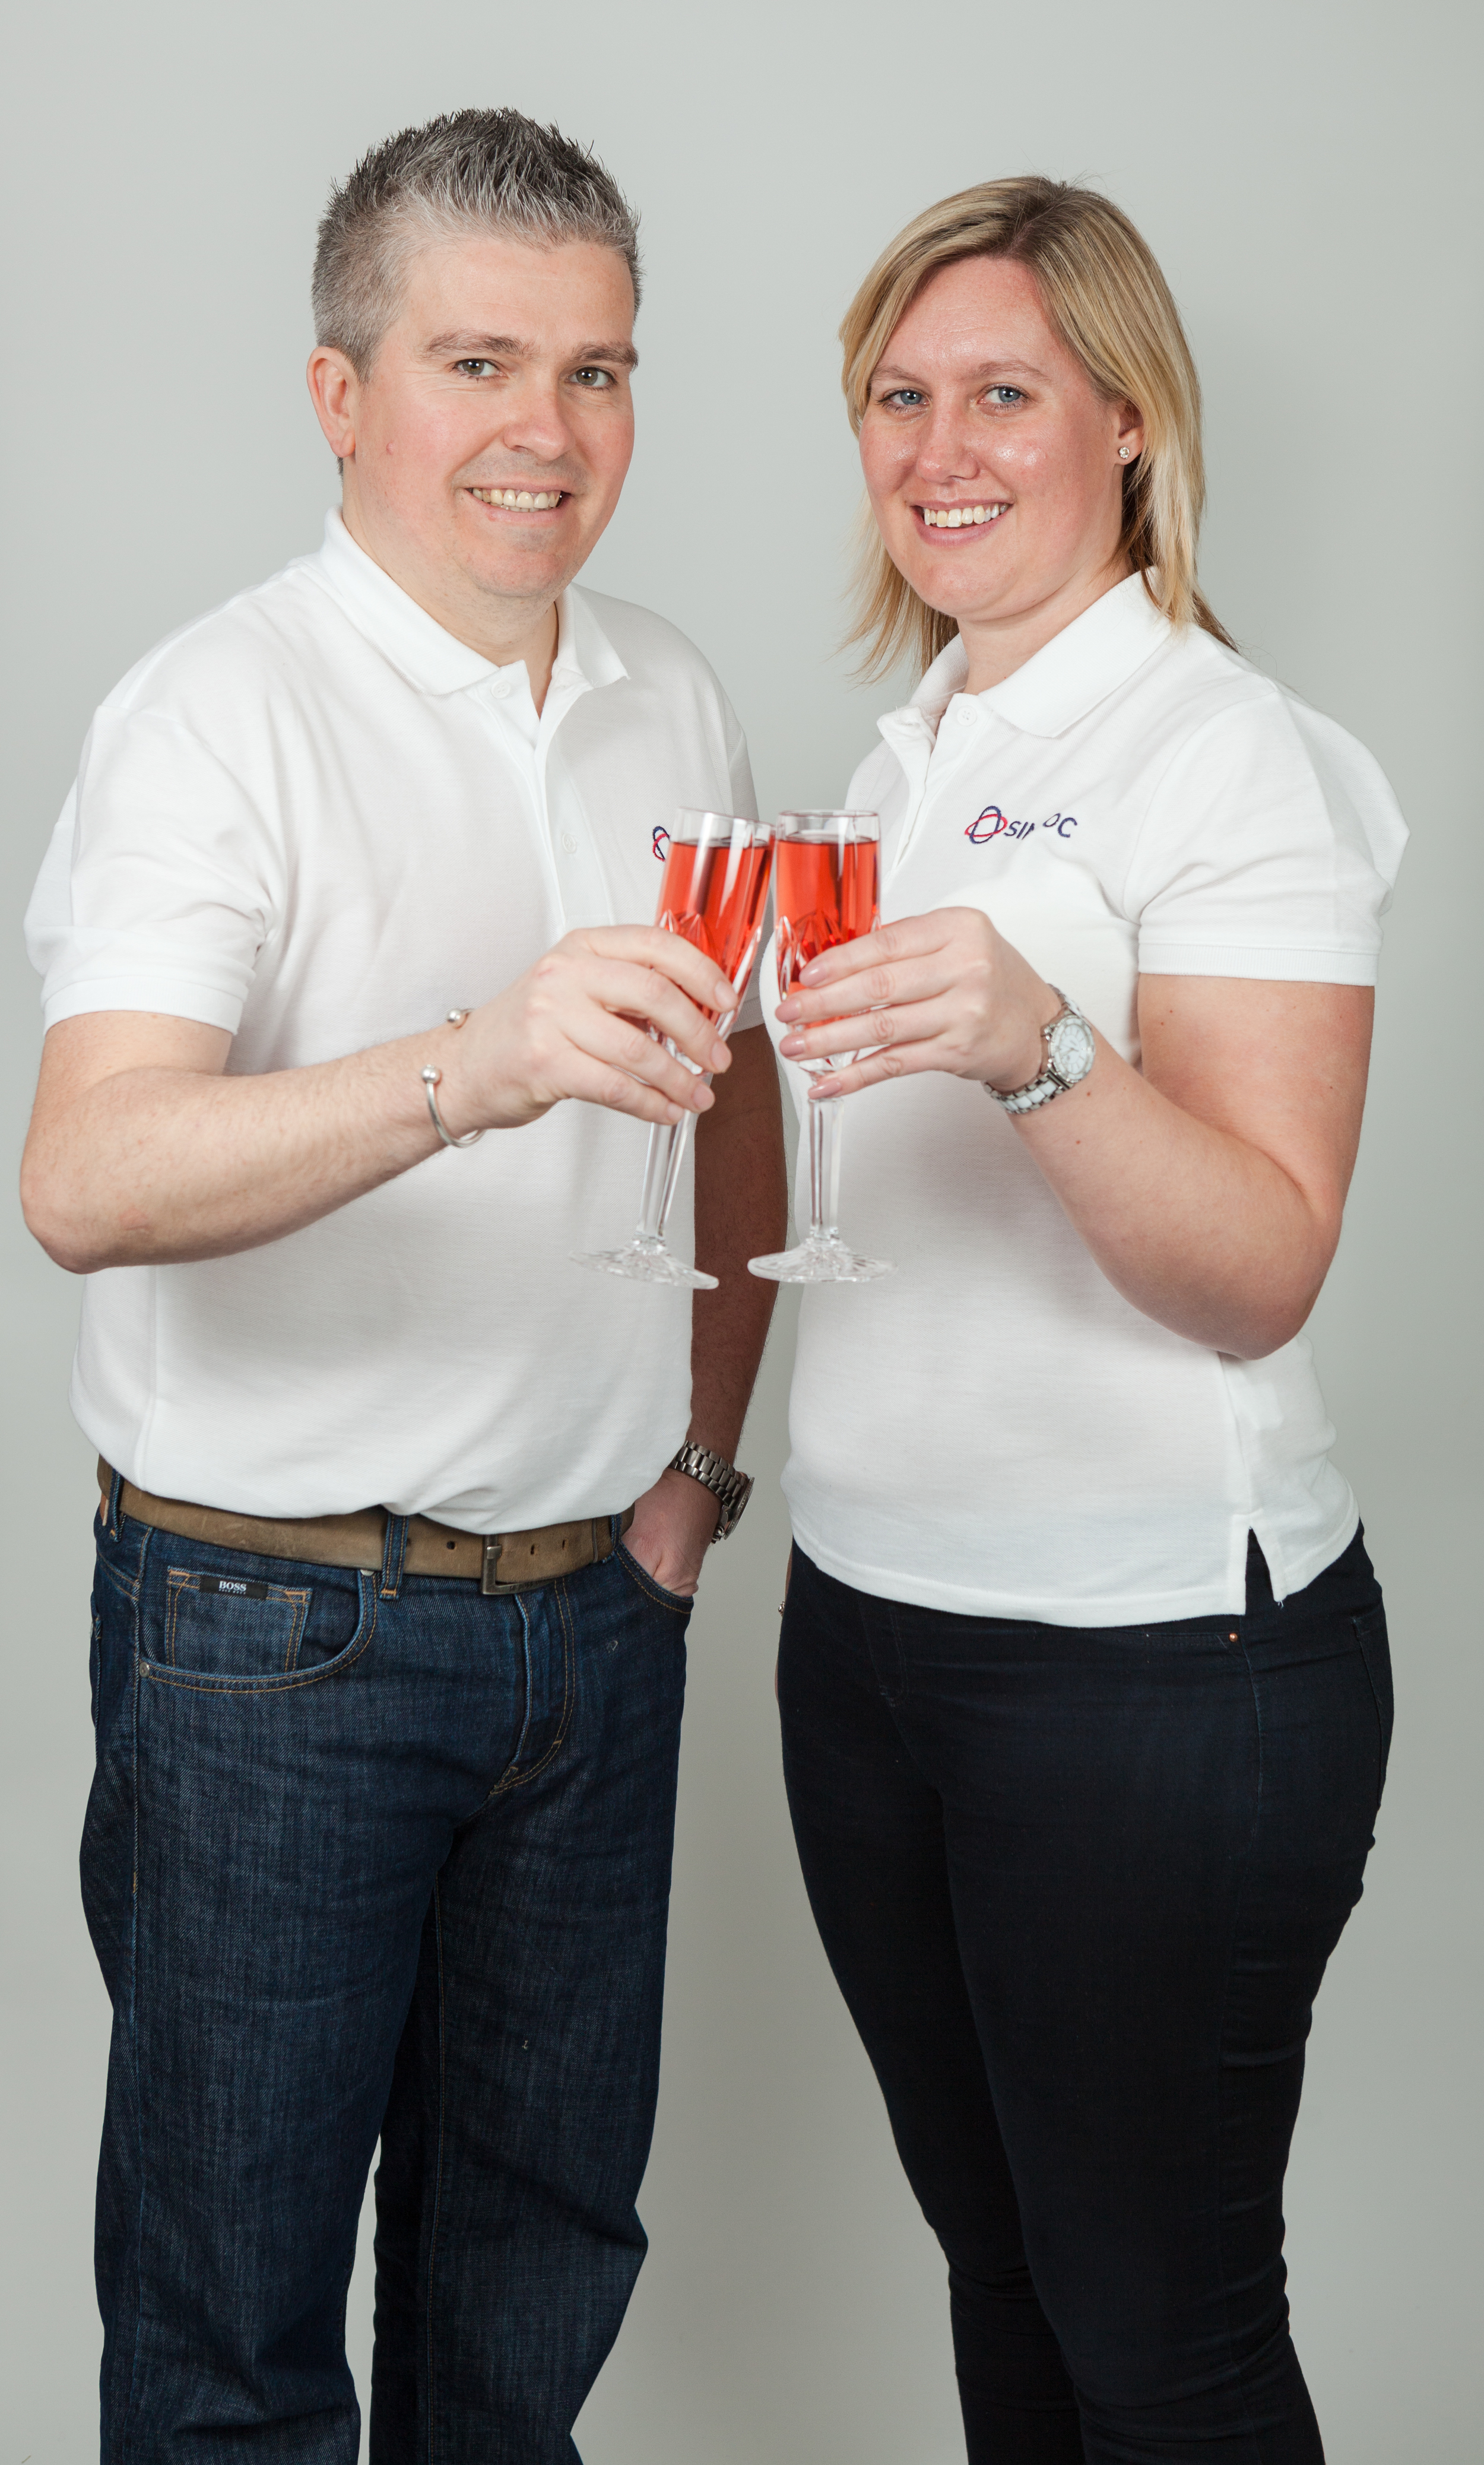 Jo and Dave - Champagne - Cheers_SimbocLtd_6677.jpg